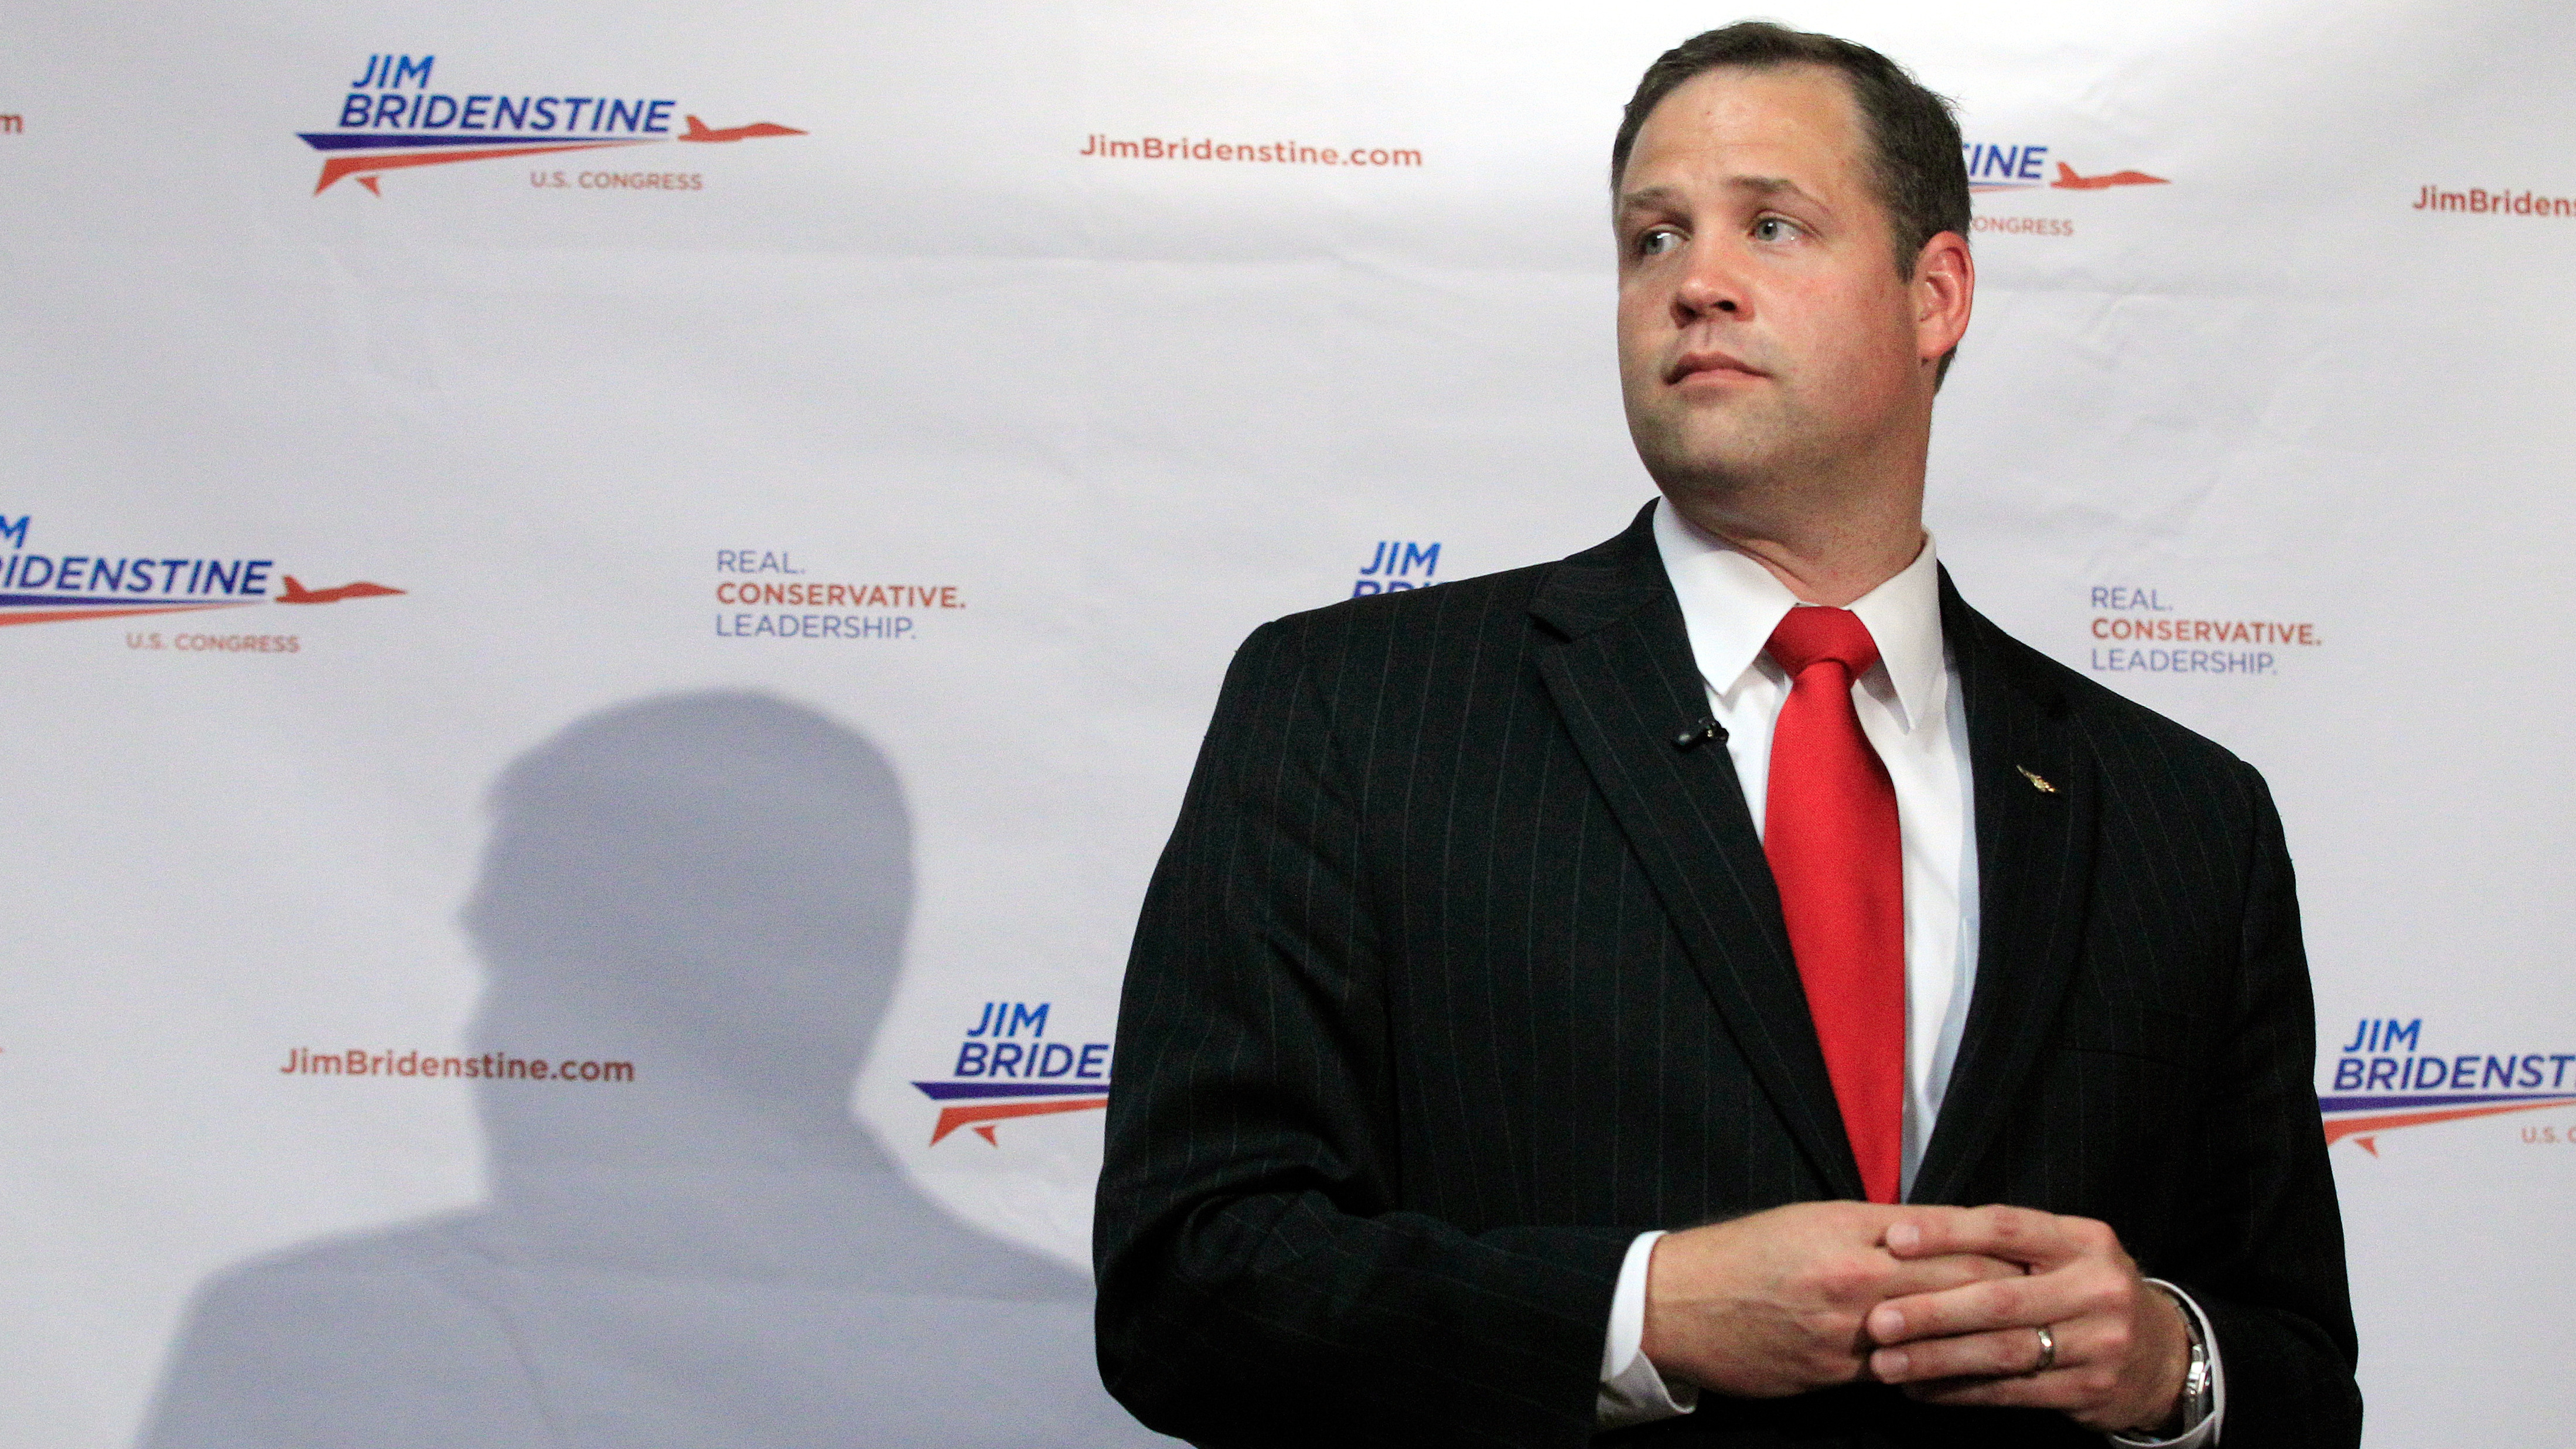 Jim Bridenstine, candidate for U.S. House 1st District of Oklahoma in the Republican primary, speaks during a news conference in Tulsa, Okla., Wednesday, June 20, 2012.